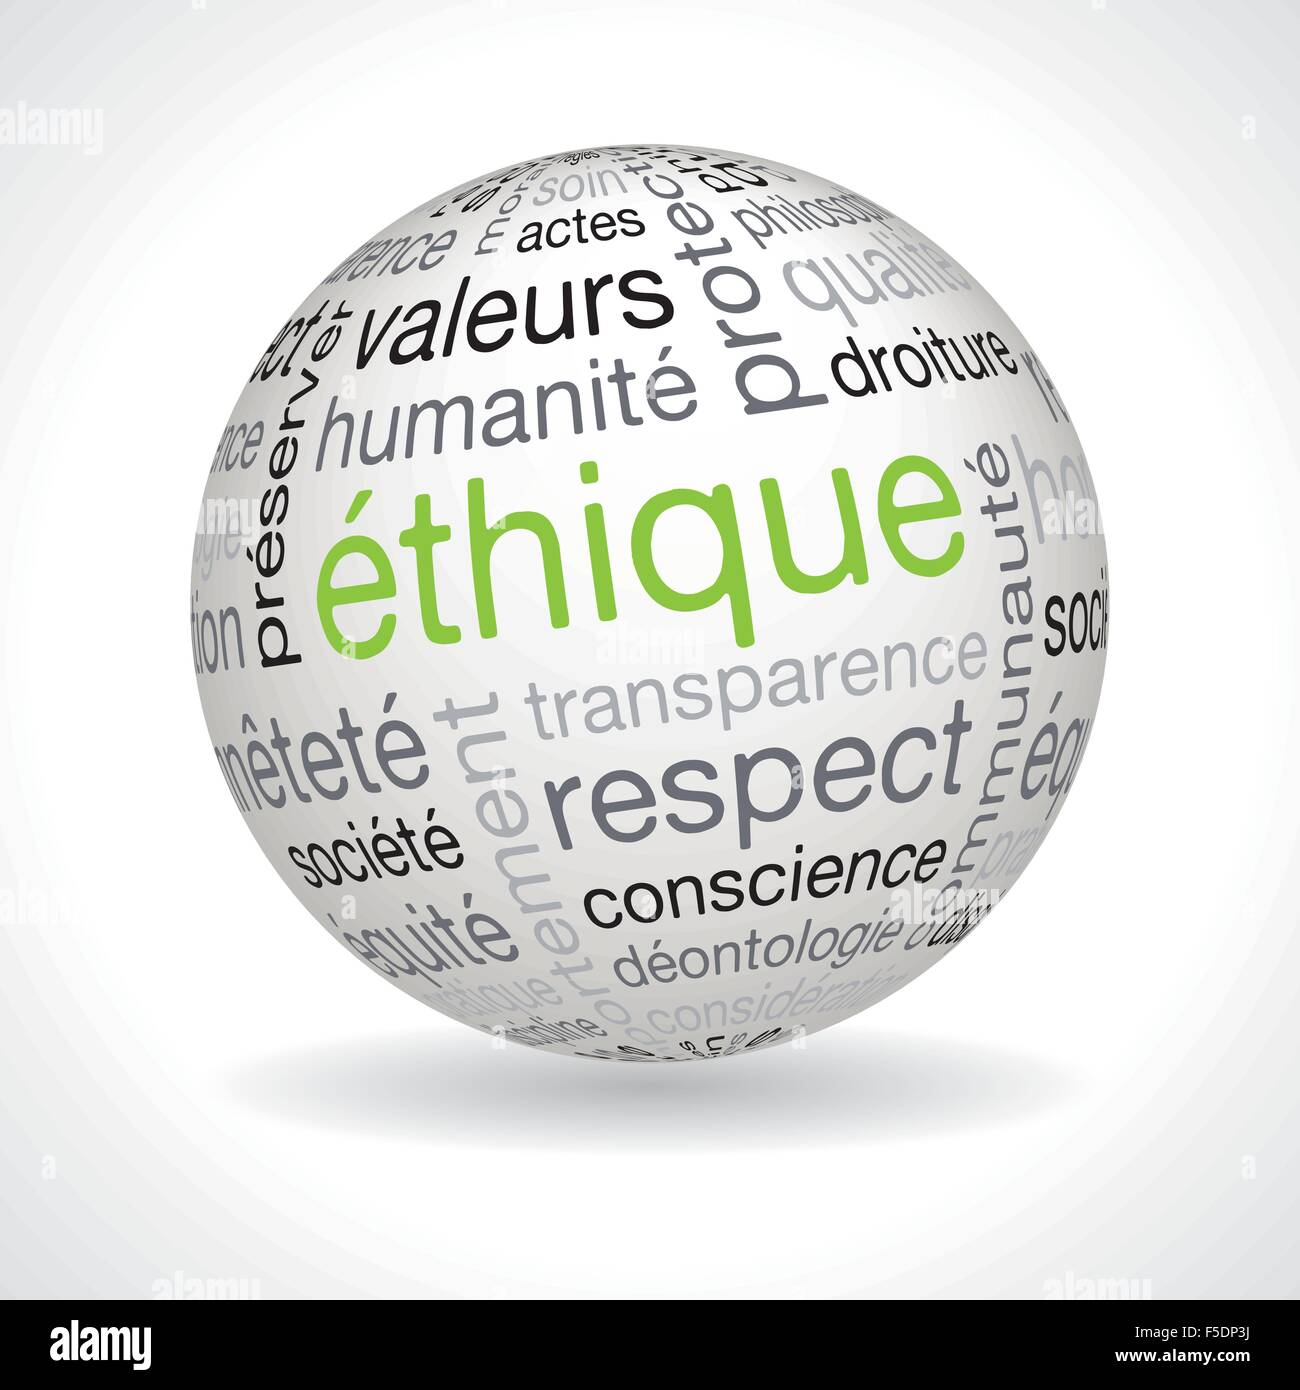 French ethics theme sphere with keywords full vector - Stock Image